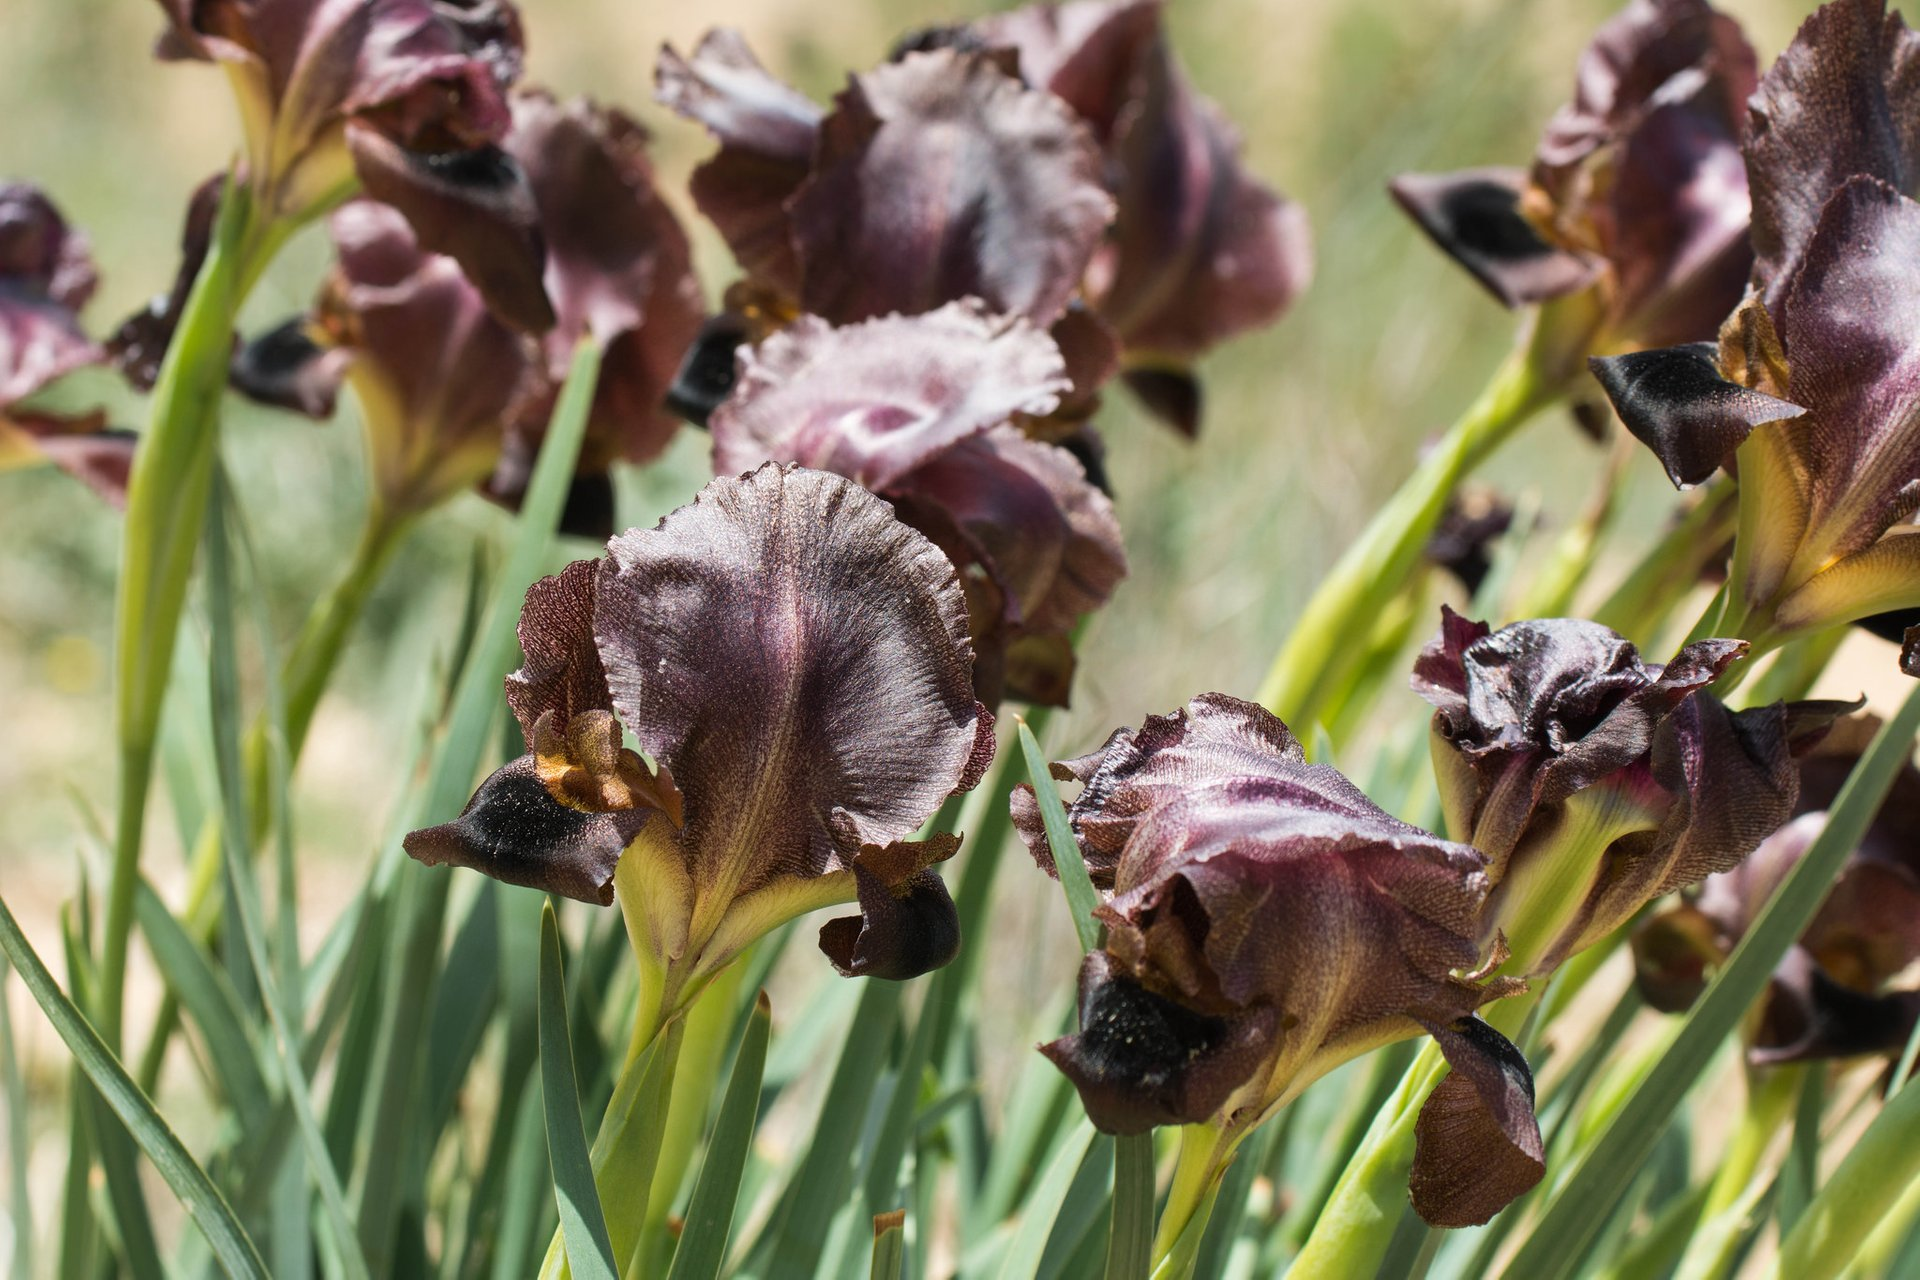 Black Iris in Jordan 2019 - Best Time